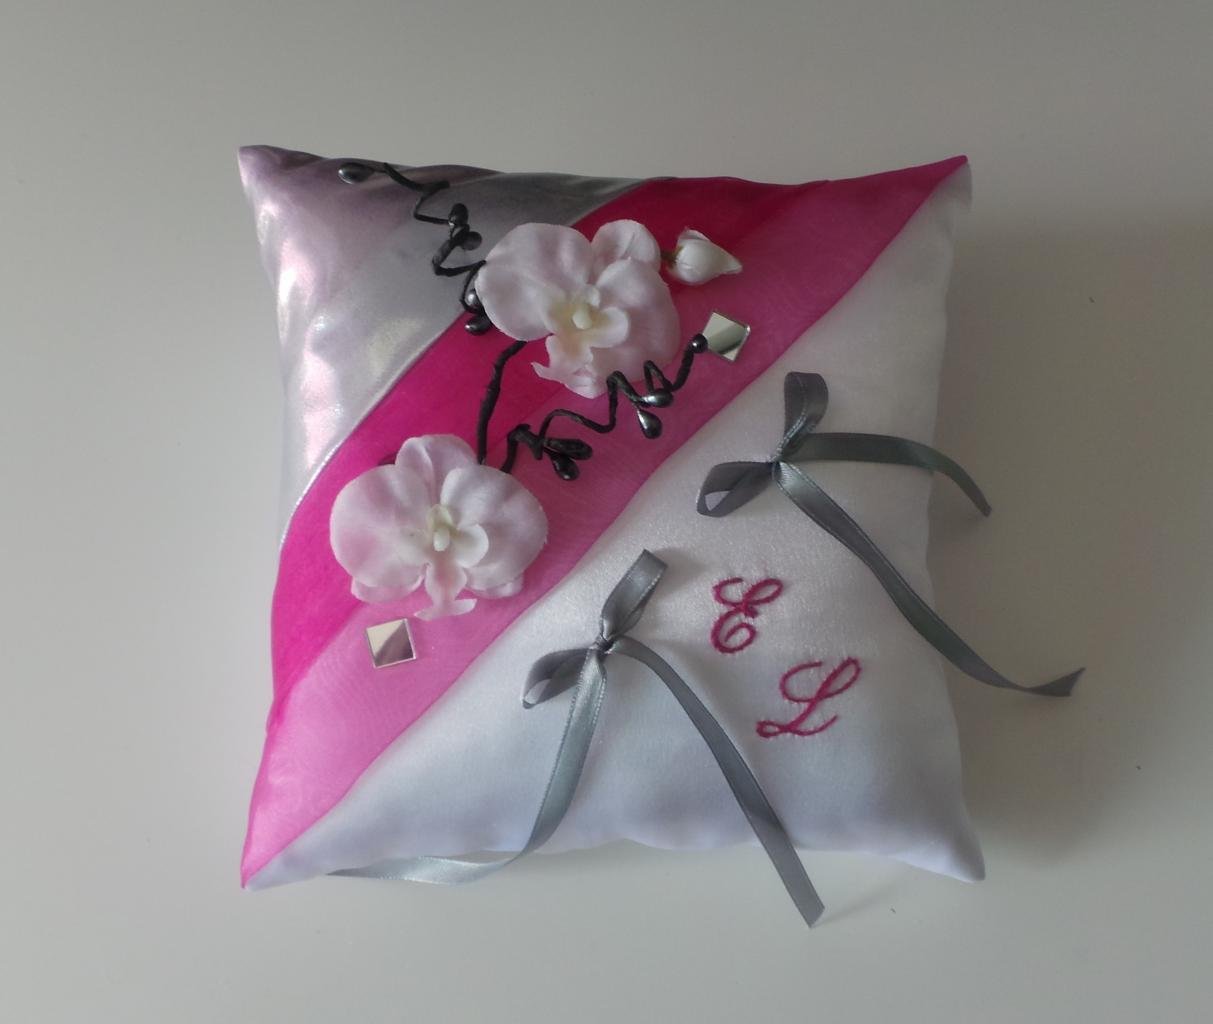 coussin mariage (1184)